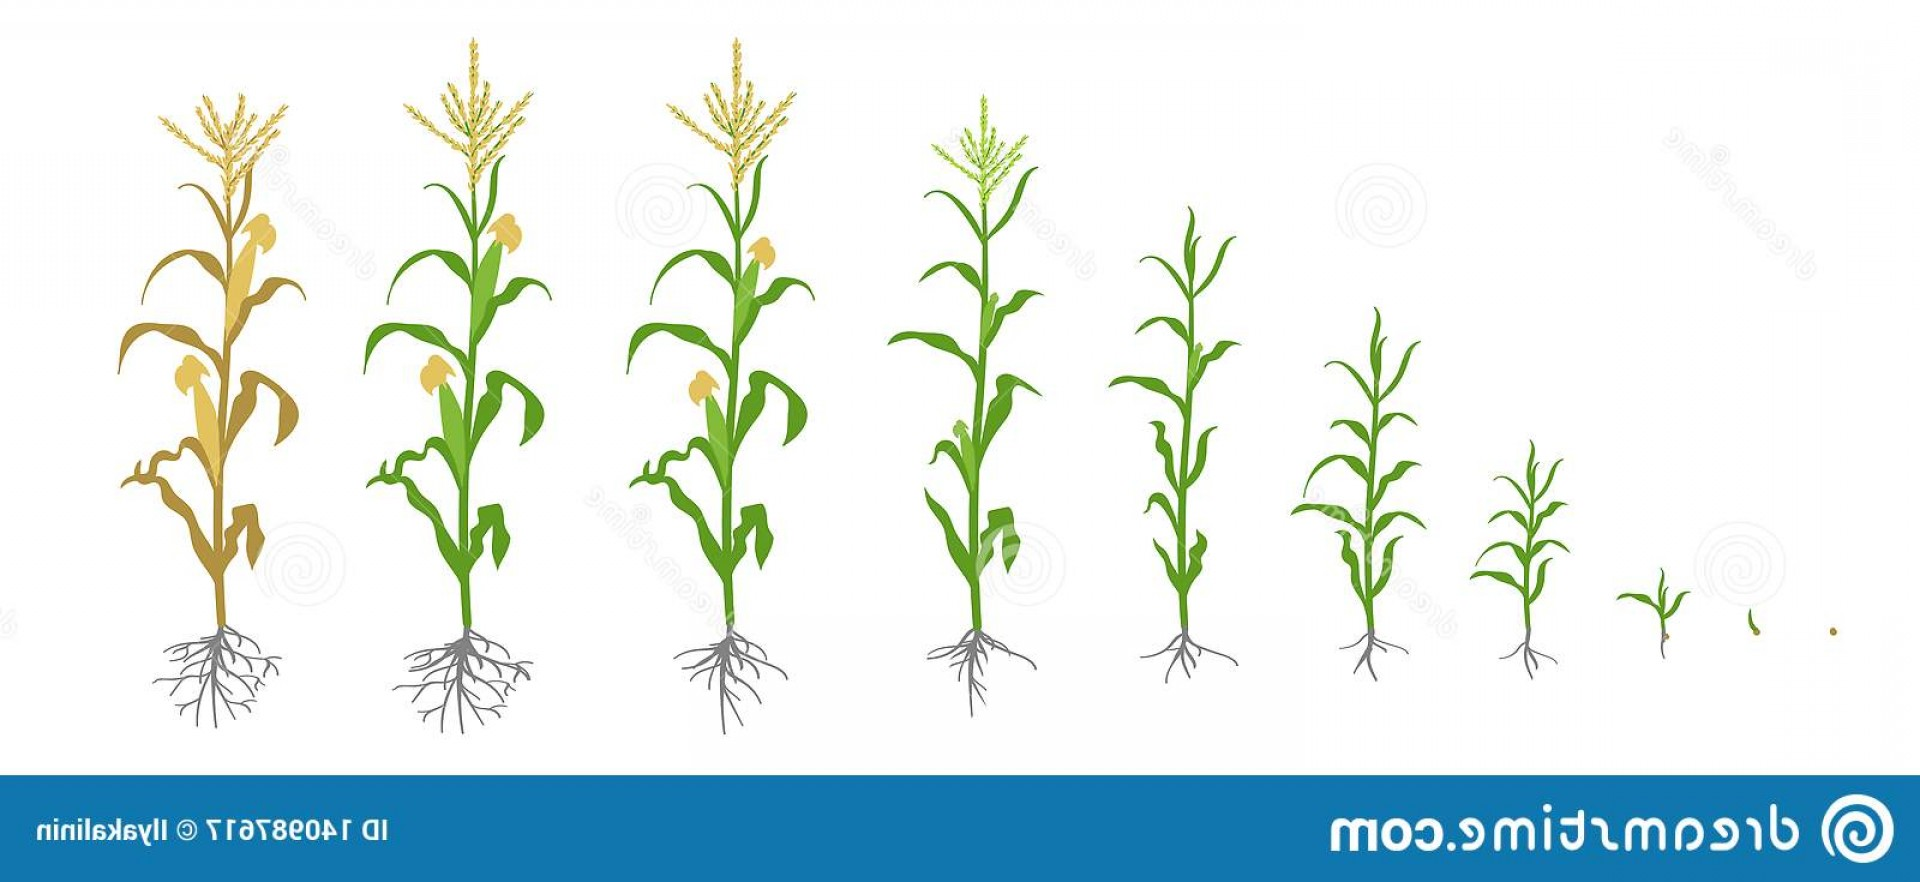 Maize Vector Tree: Growth Stages Maize Plant Corn Phases Vector Illustration Zea Mays Ripening Period Life Cycle Use Fertilizers White Image